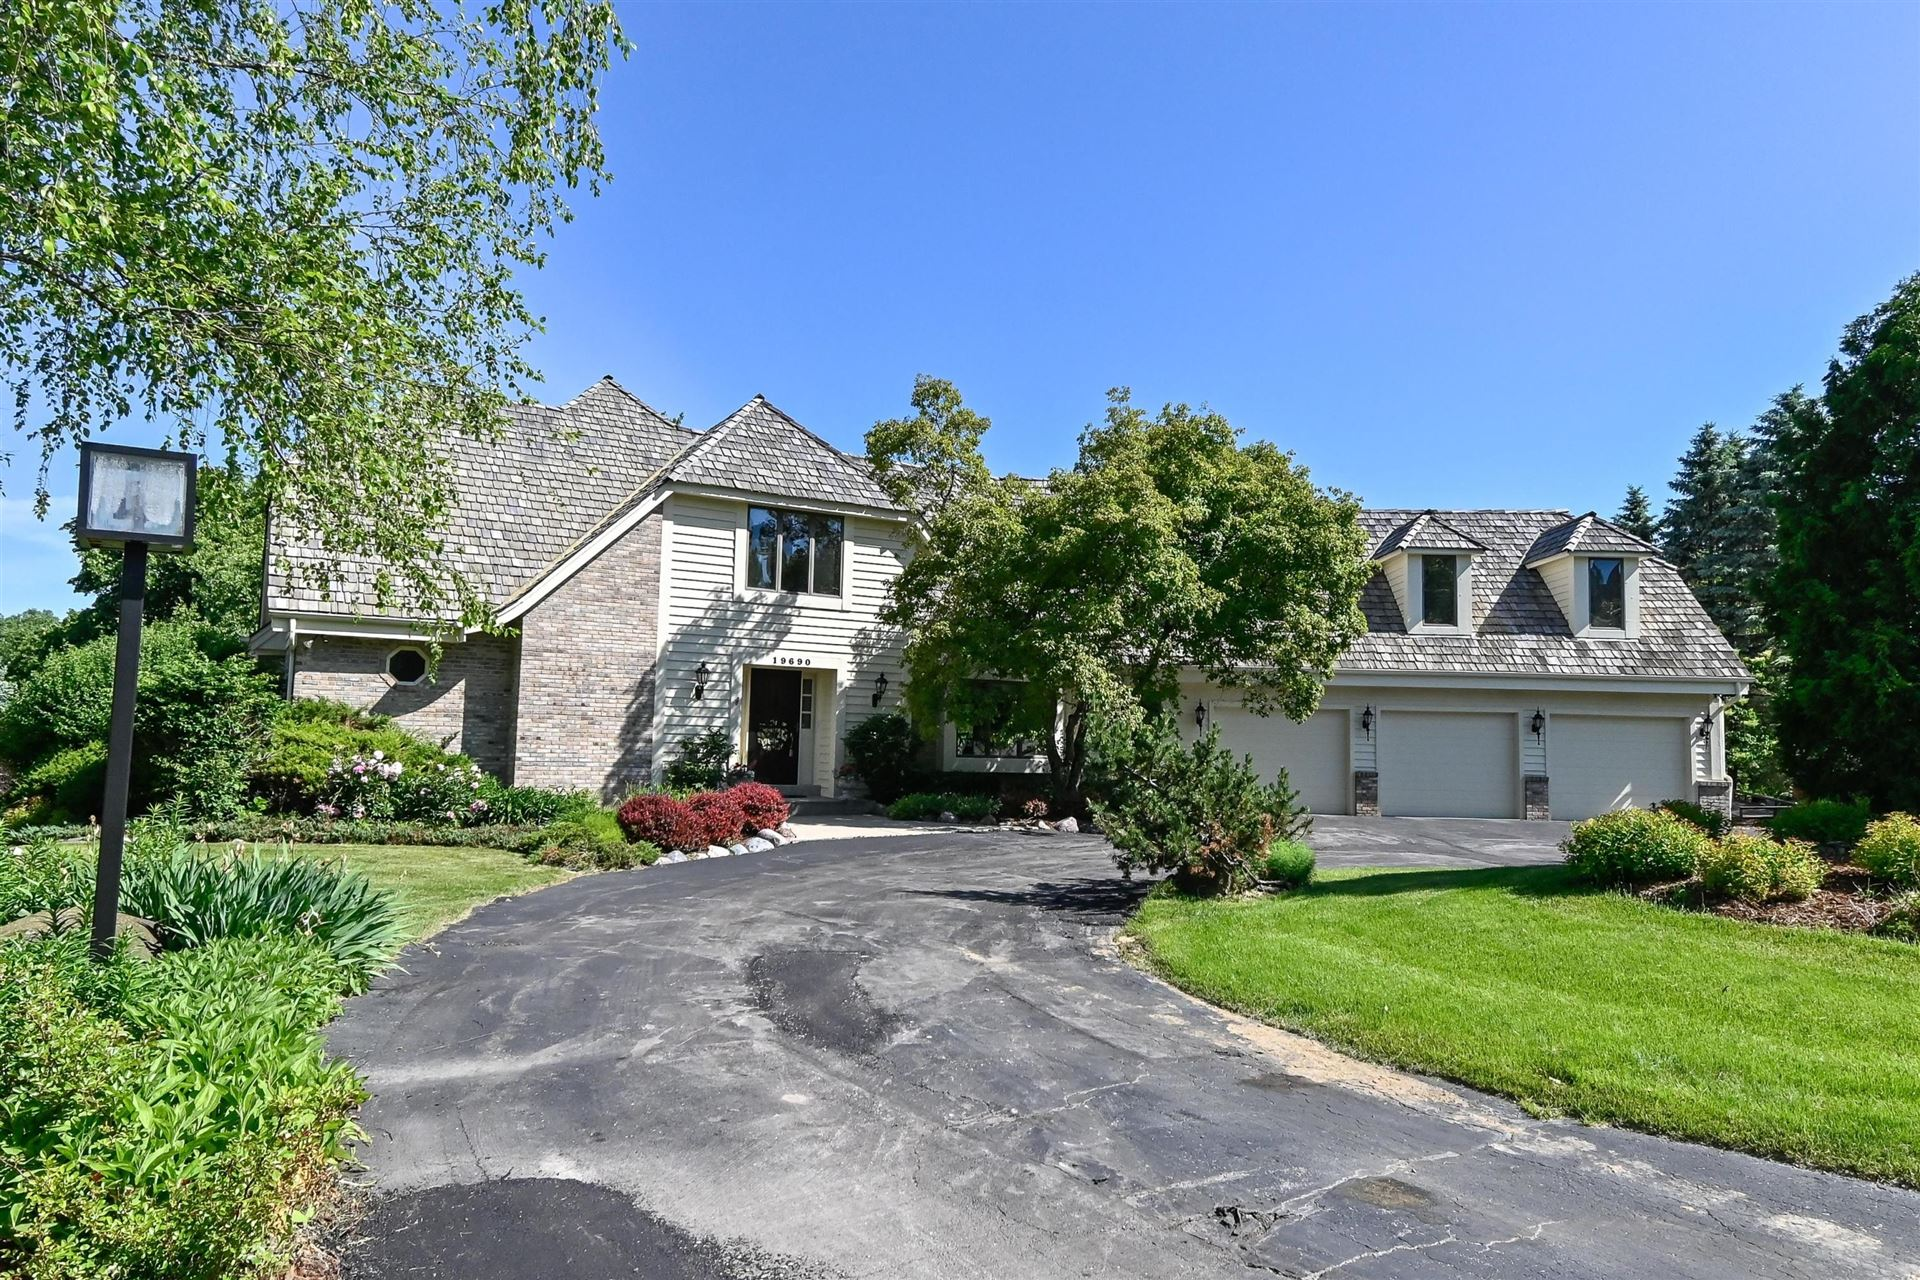 19690 Putneys Ct, Brookfield, WI 53045 - #: 1694040